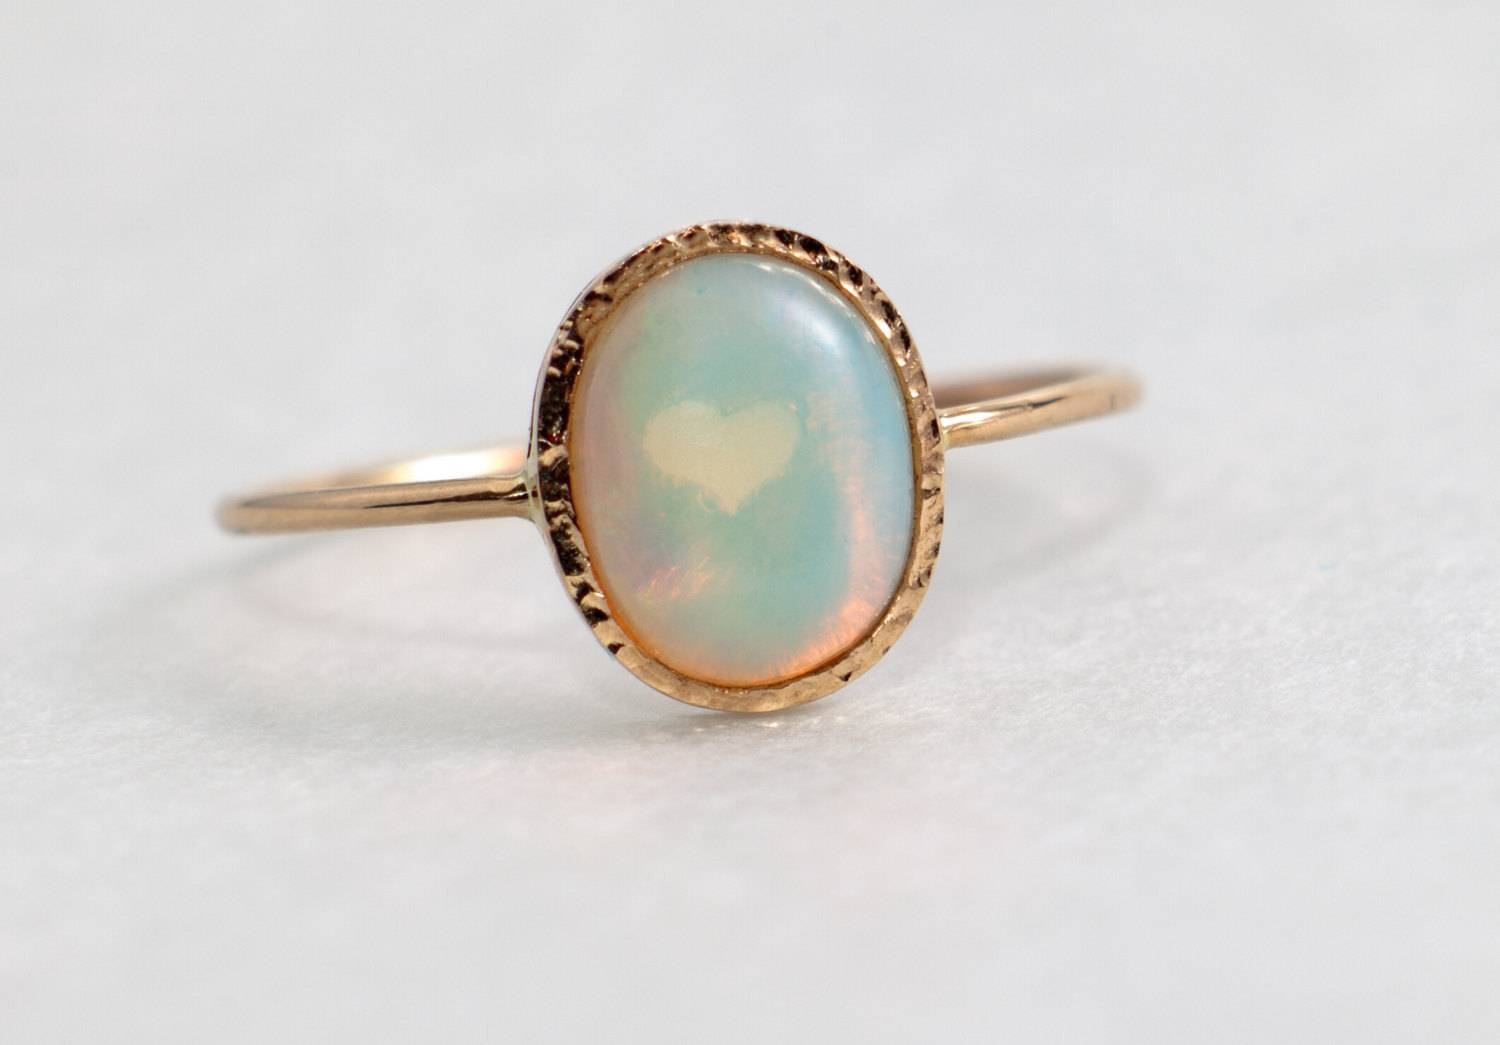 Fire Opal Engagement Ring, Solid 14K Gold, Opal Jewelry Inside Australia Opal Engagement Rings (View 9 of 15)